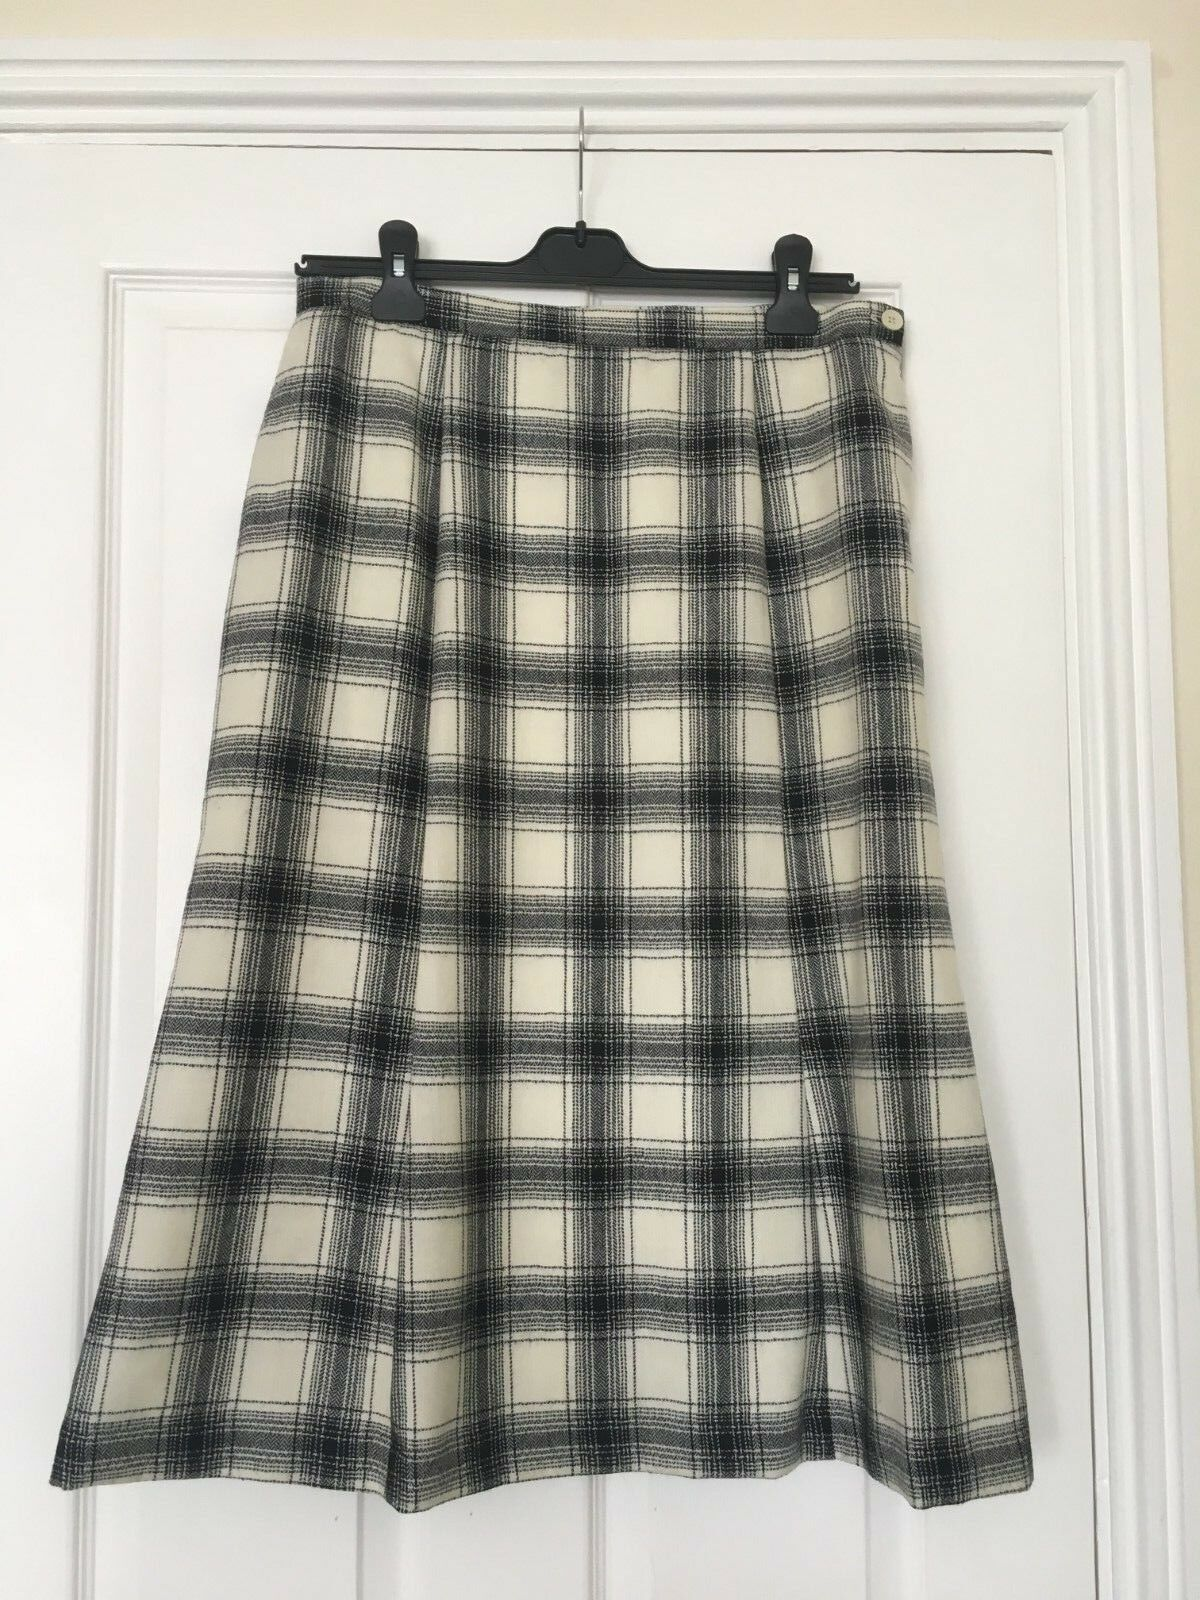 NEW women skirt, brand ''COTSWOLD'', size 16. color mixed, 100% WOOL.